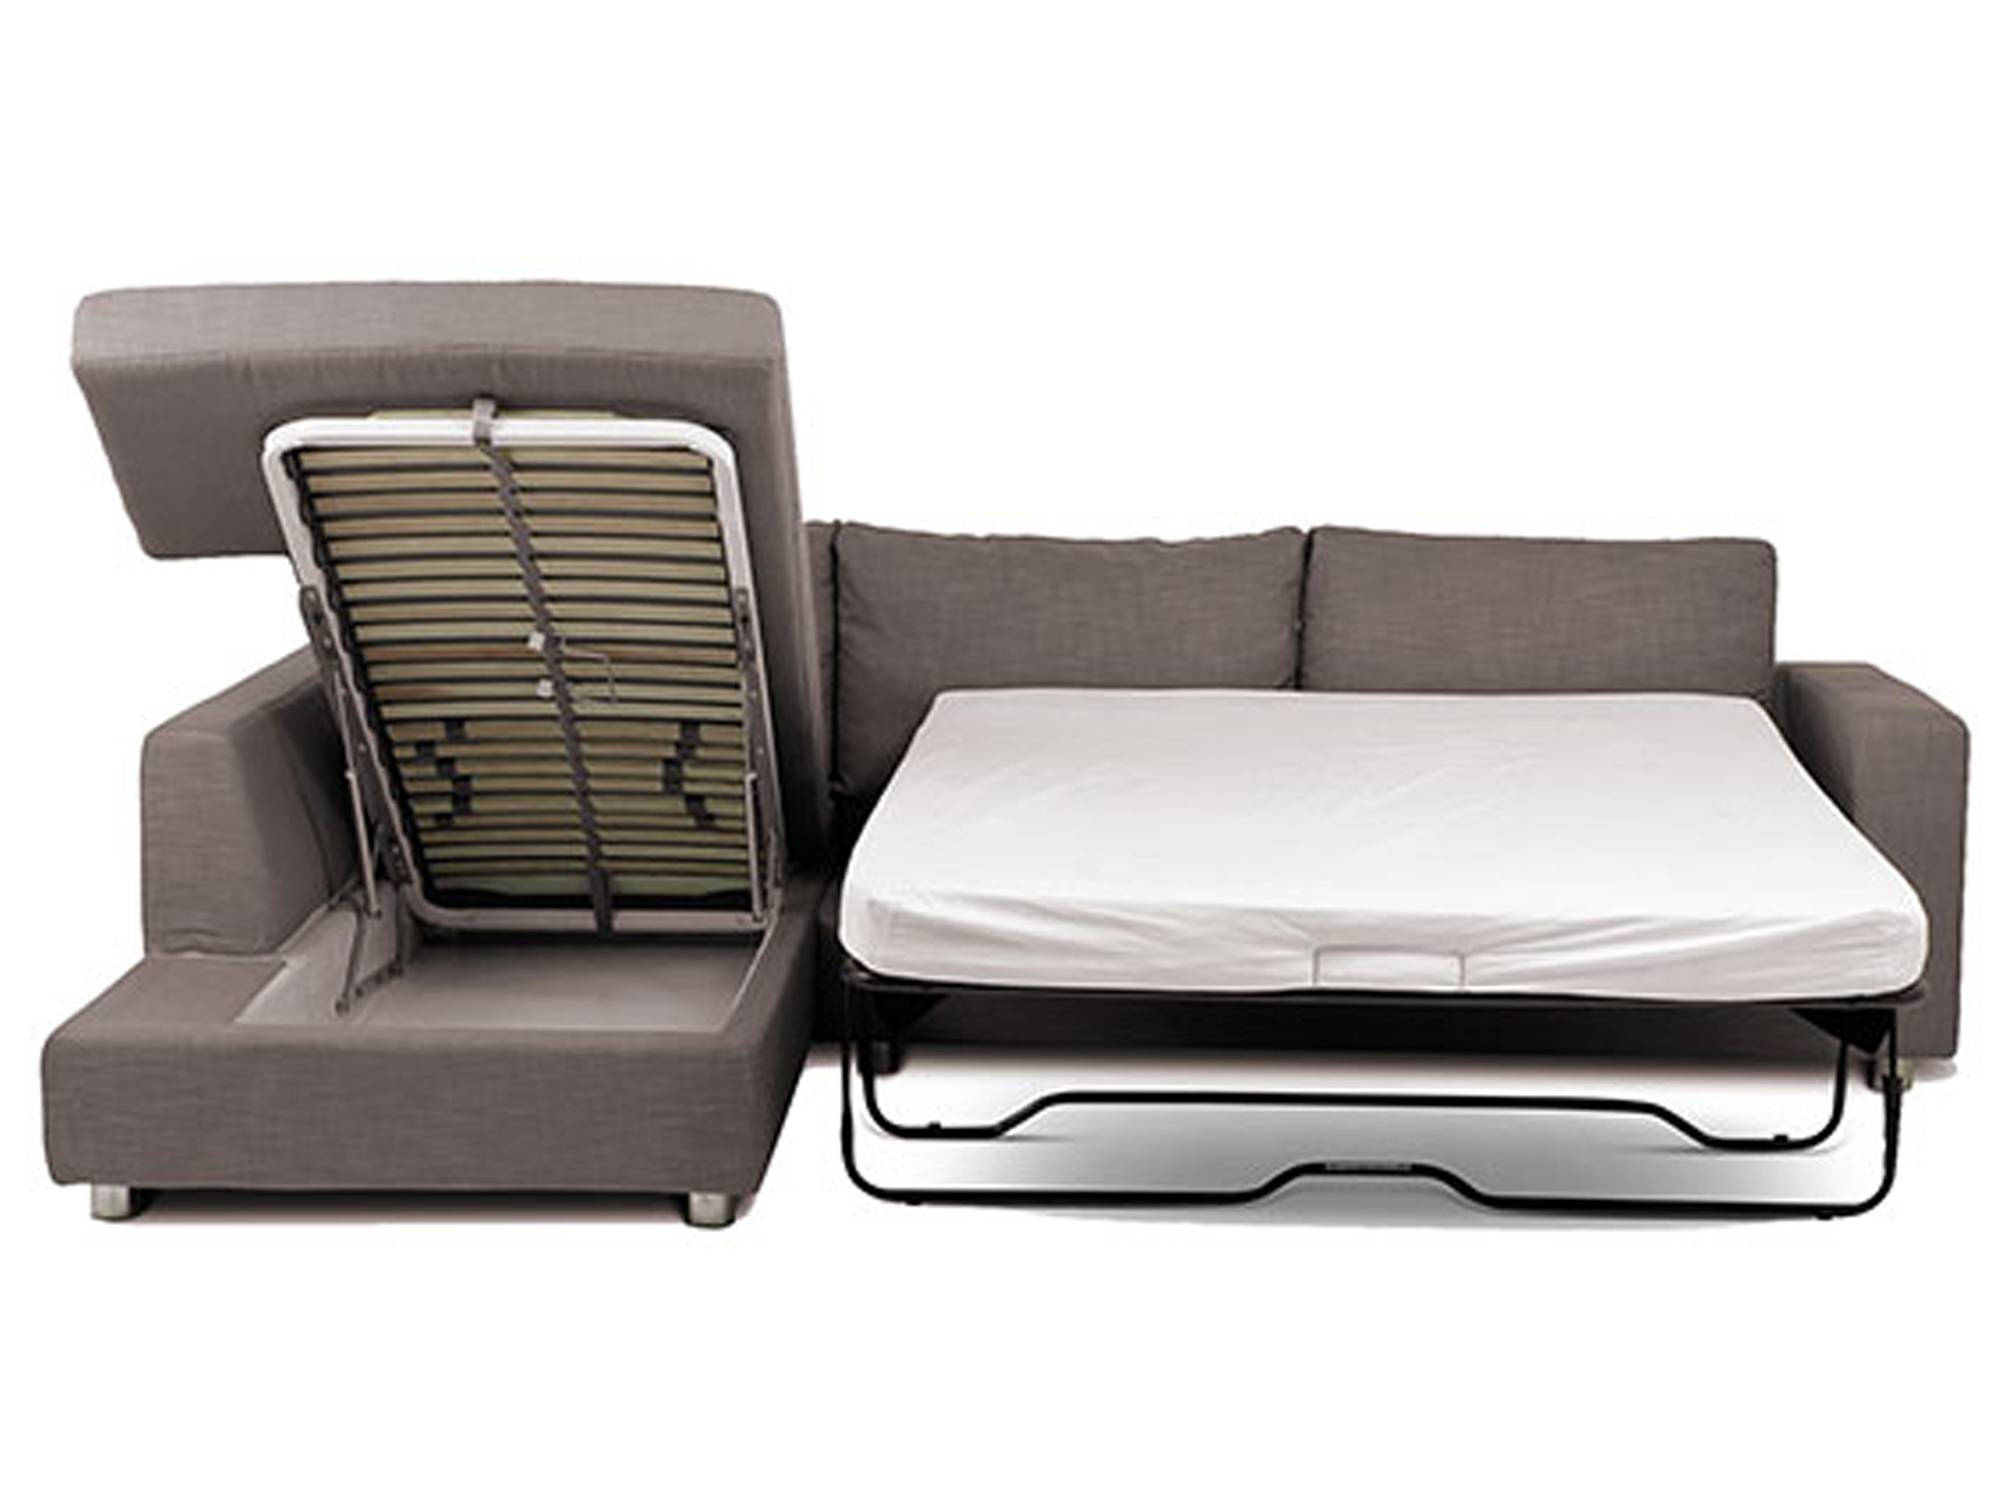 Cosy Corner Chaise Lounge Sofa Bed For Home Designing Inspiration Throughout Sofa Beds With Chaise Lounge (View 3 of 15)